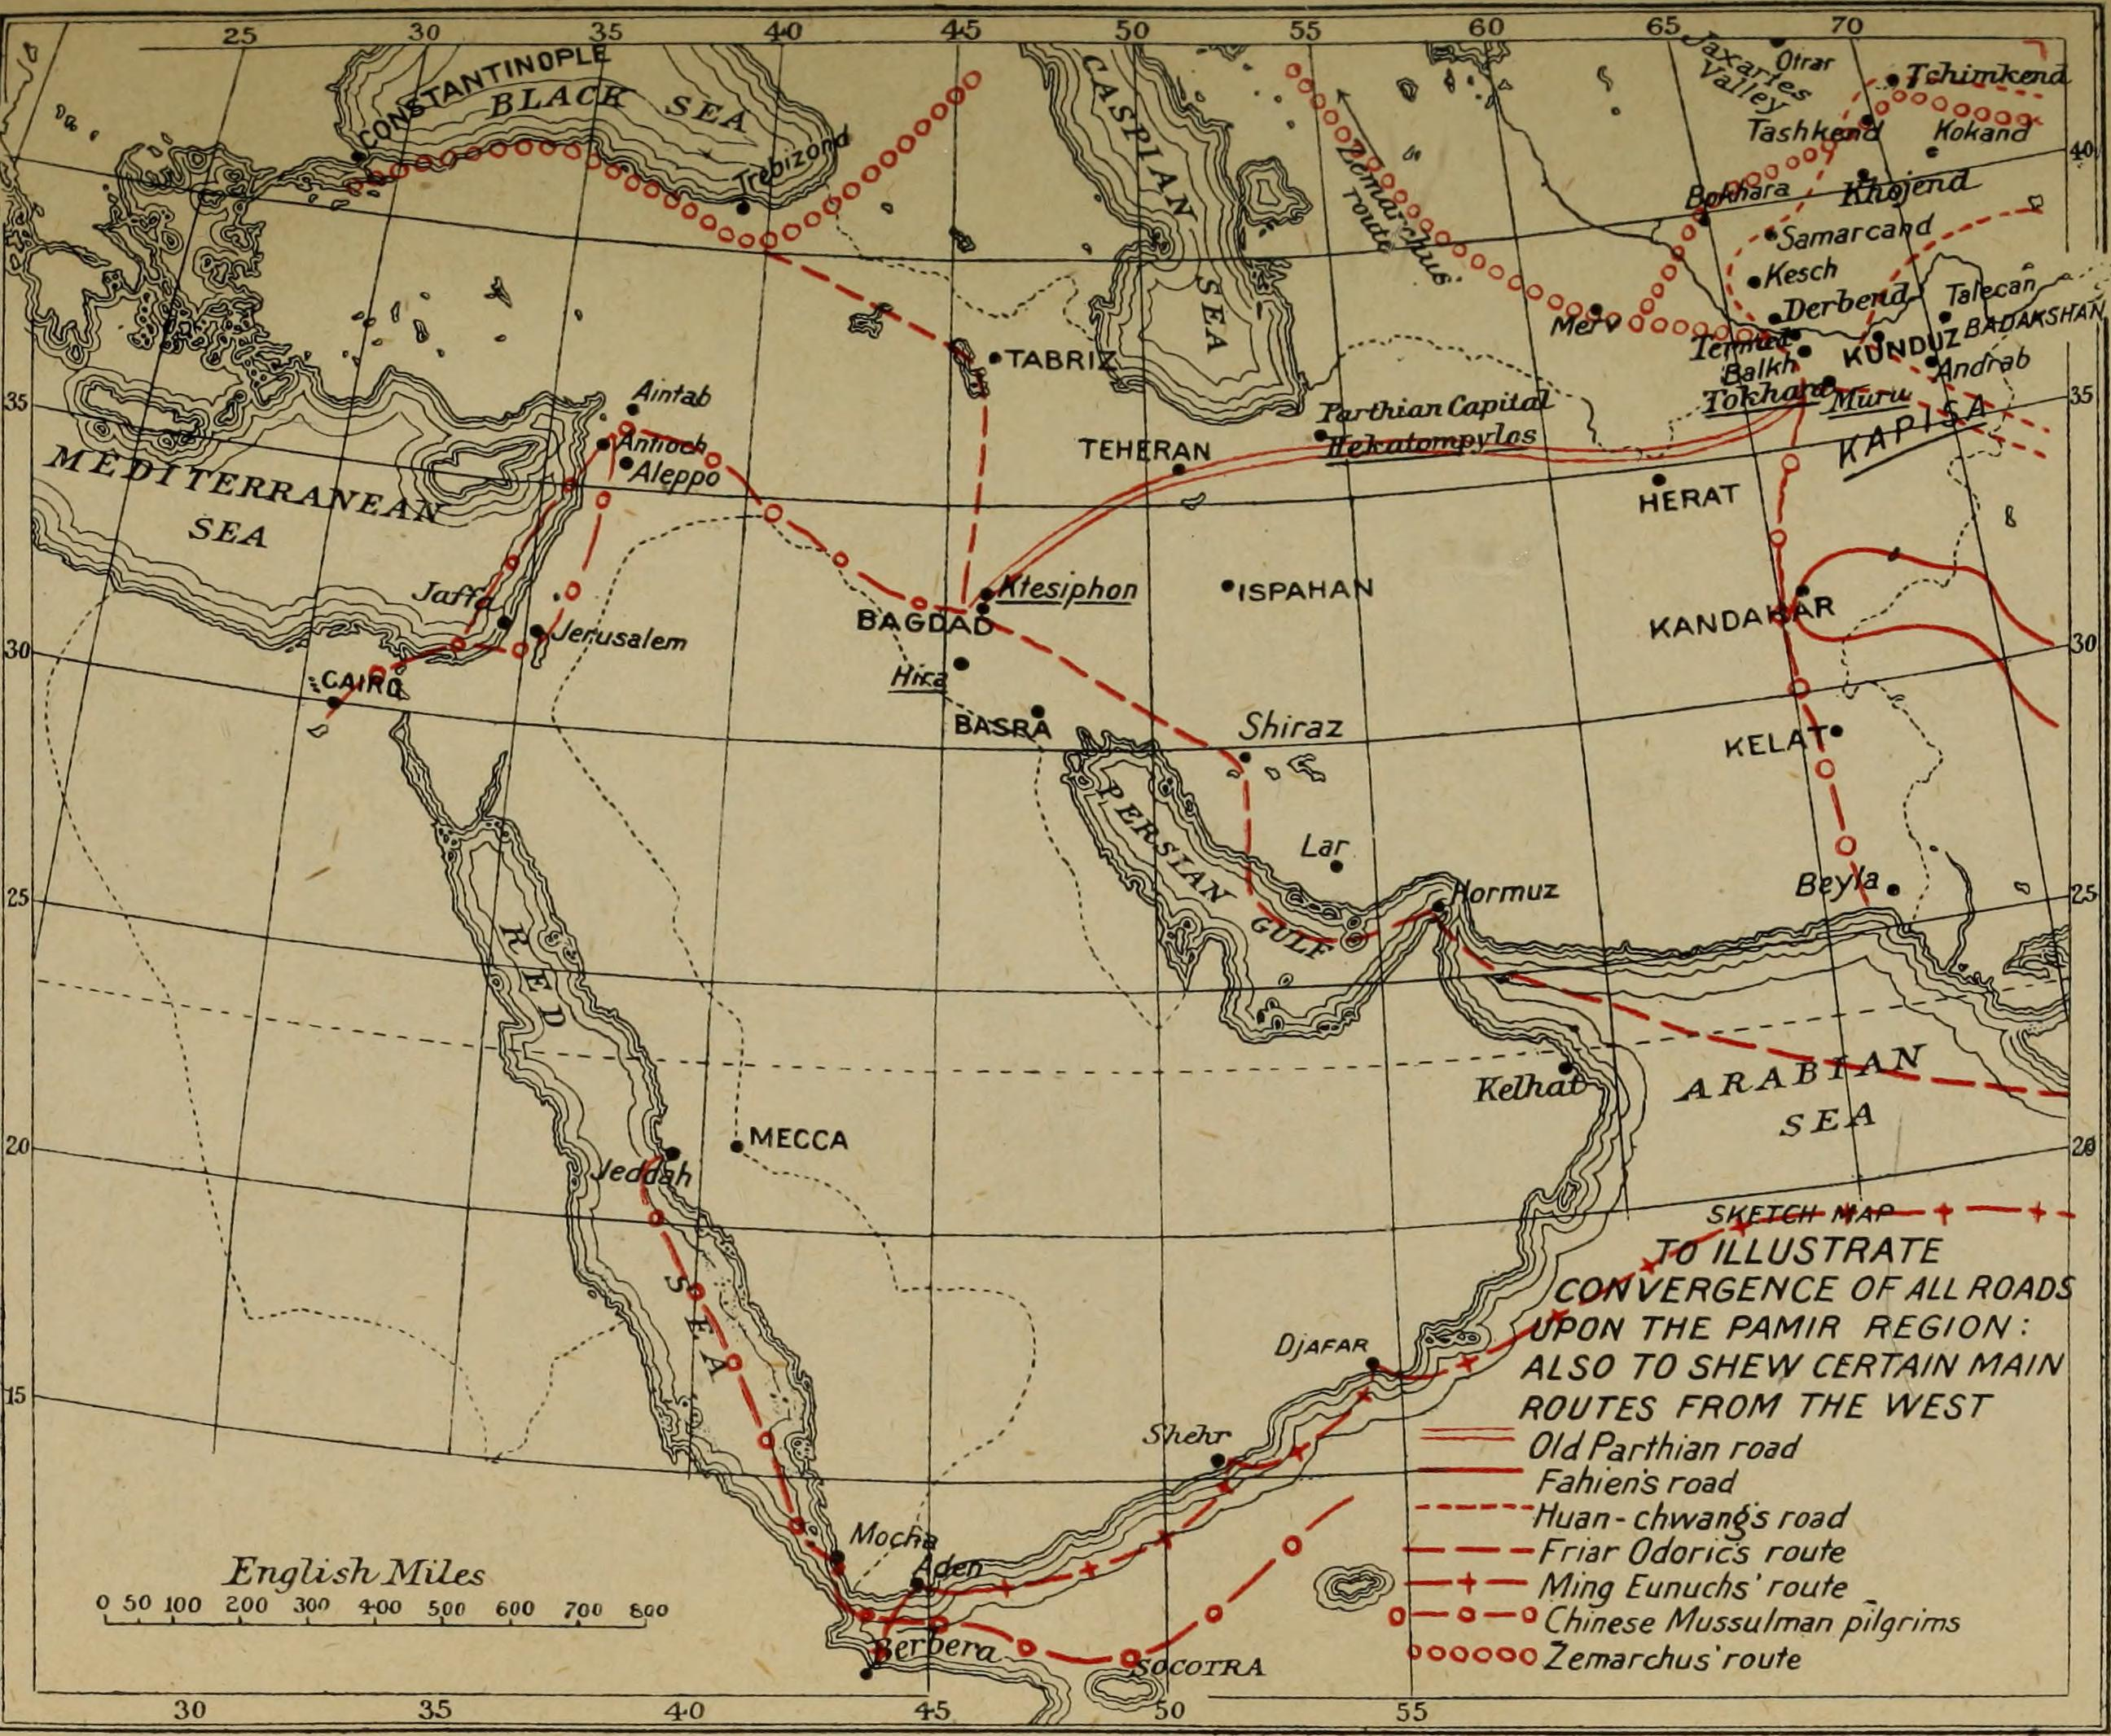 File:China, her history, diplomacy, and commerce, from the ... on map of istanbul, map of mogadishu, map of hankou, map of ramallah, map of karachi, map of kabul, map of irbil, map of sulaymaniyah, map of shuwaikh port, map of jeddah, map of ormuz, map of kurdish people, map of bukhara, map of fustat, map of riyadh, map of zagros mountains, map of tel aviv, map of delhi, map of samarkand, map of beirut,